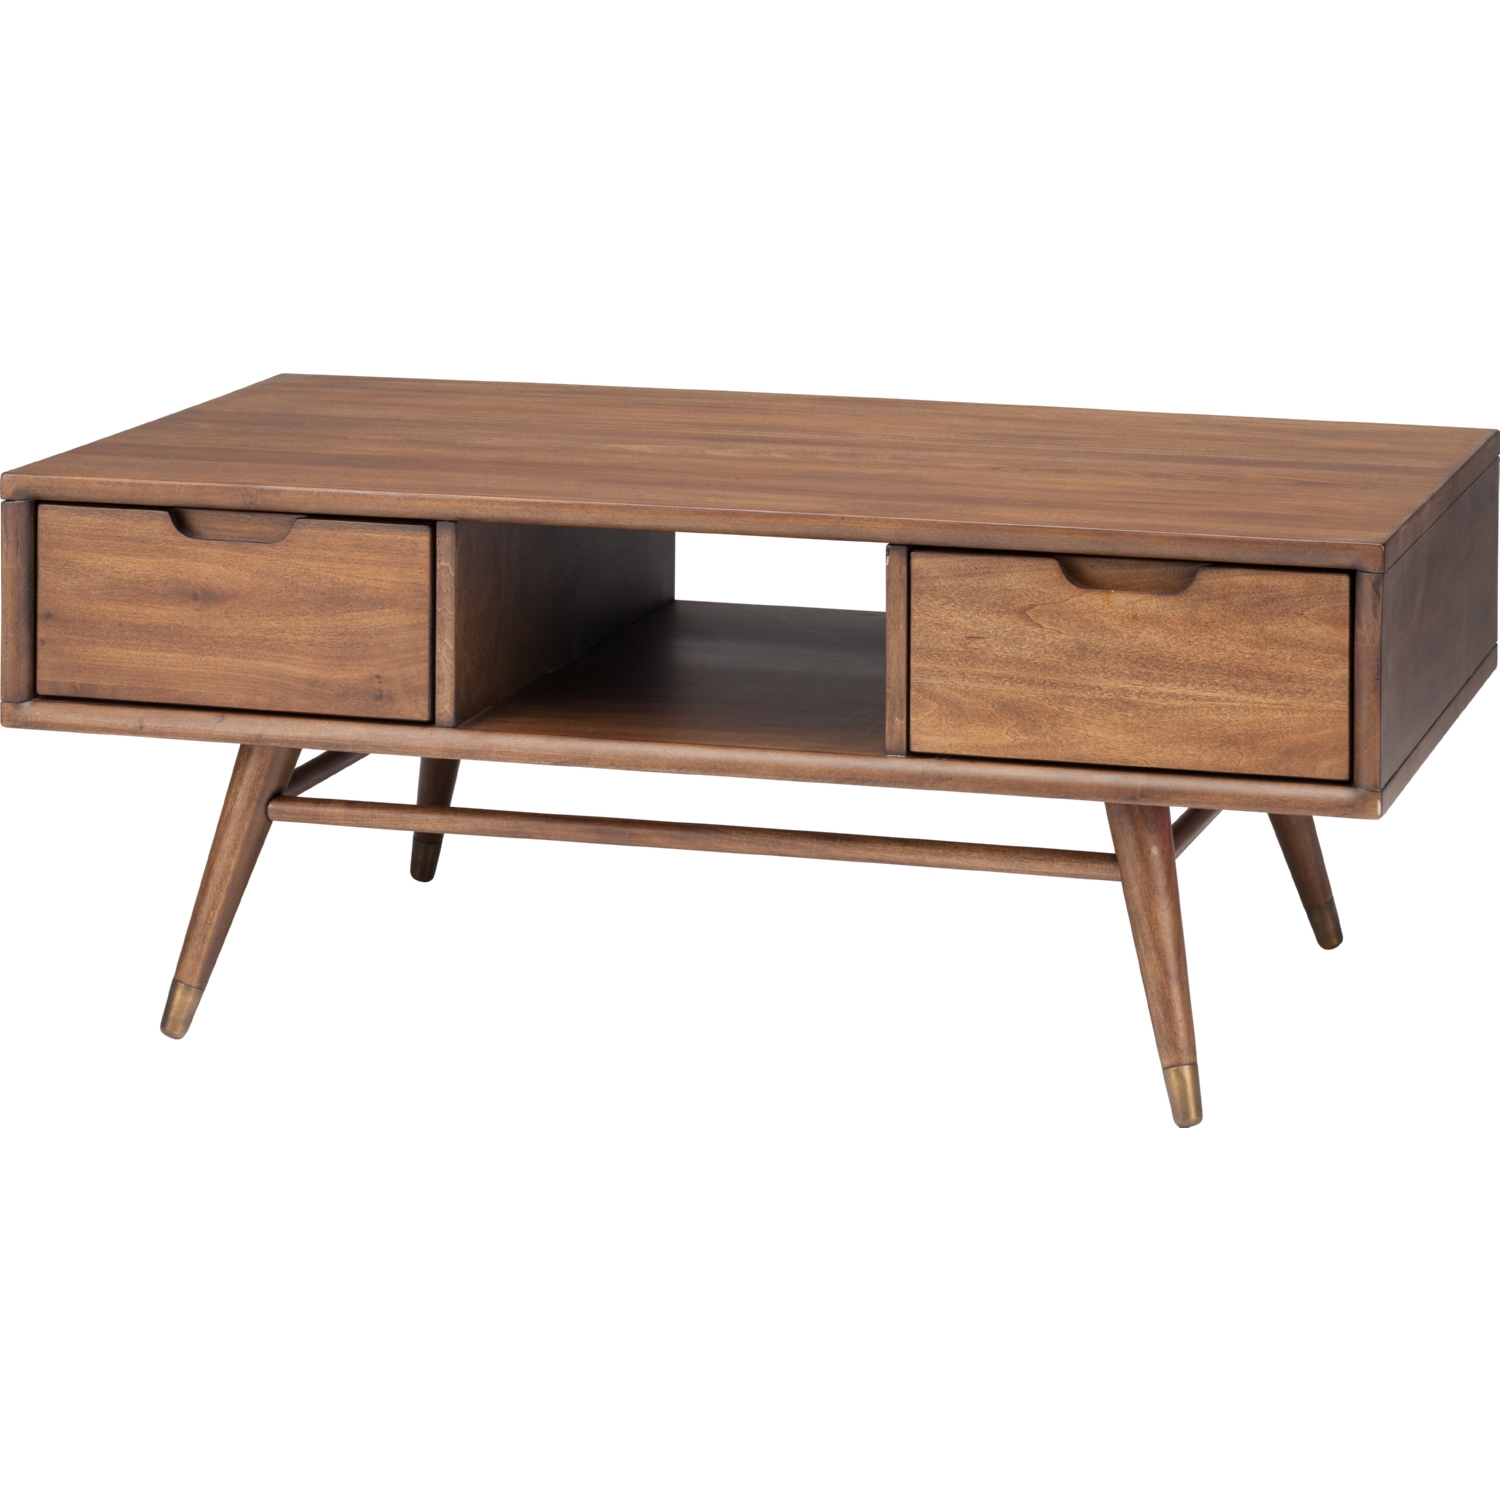 Nuevo Modern Furniture HGST114 Jake Coffee Table in Walnut Stain w